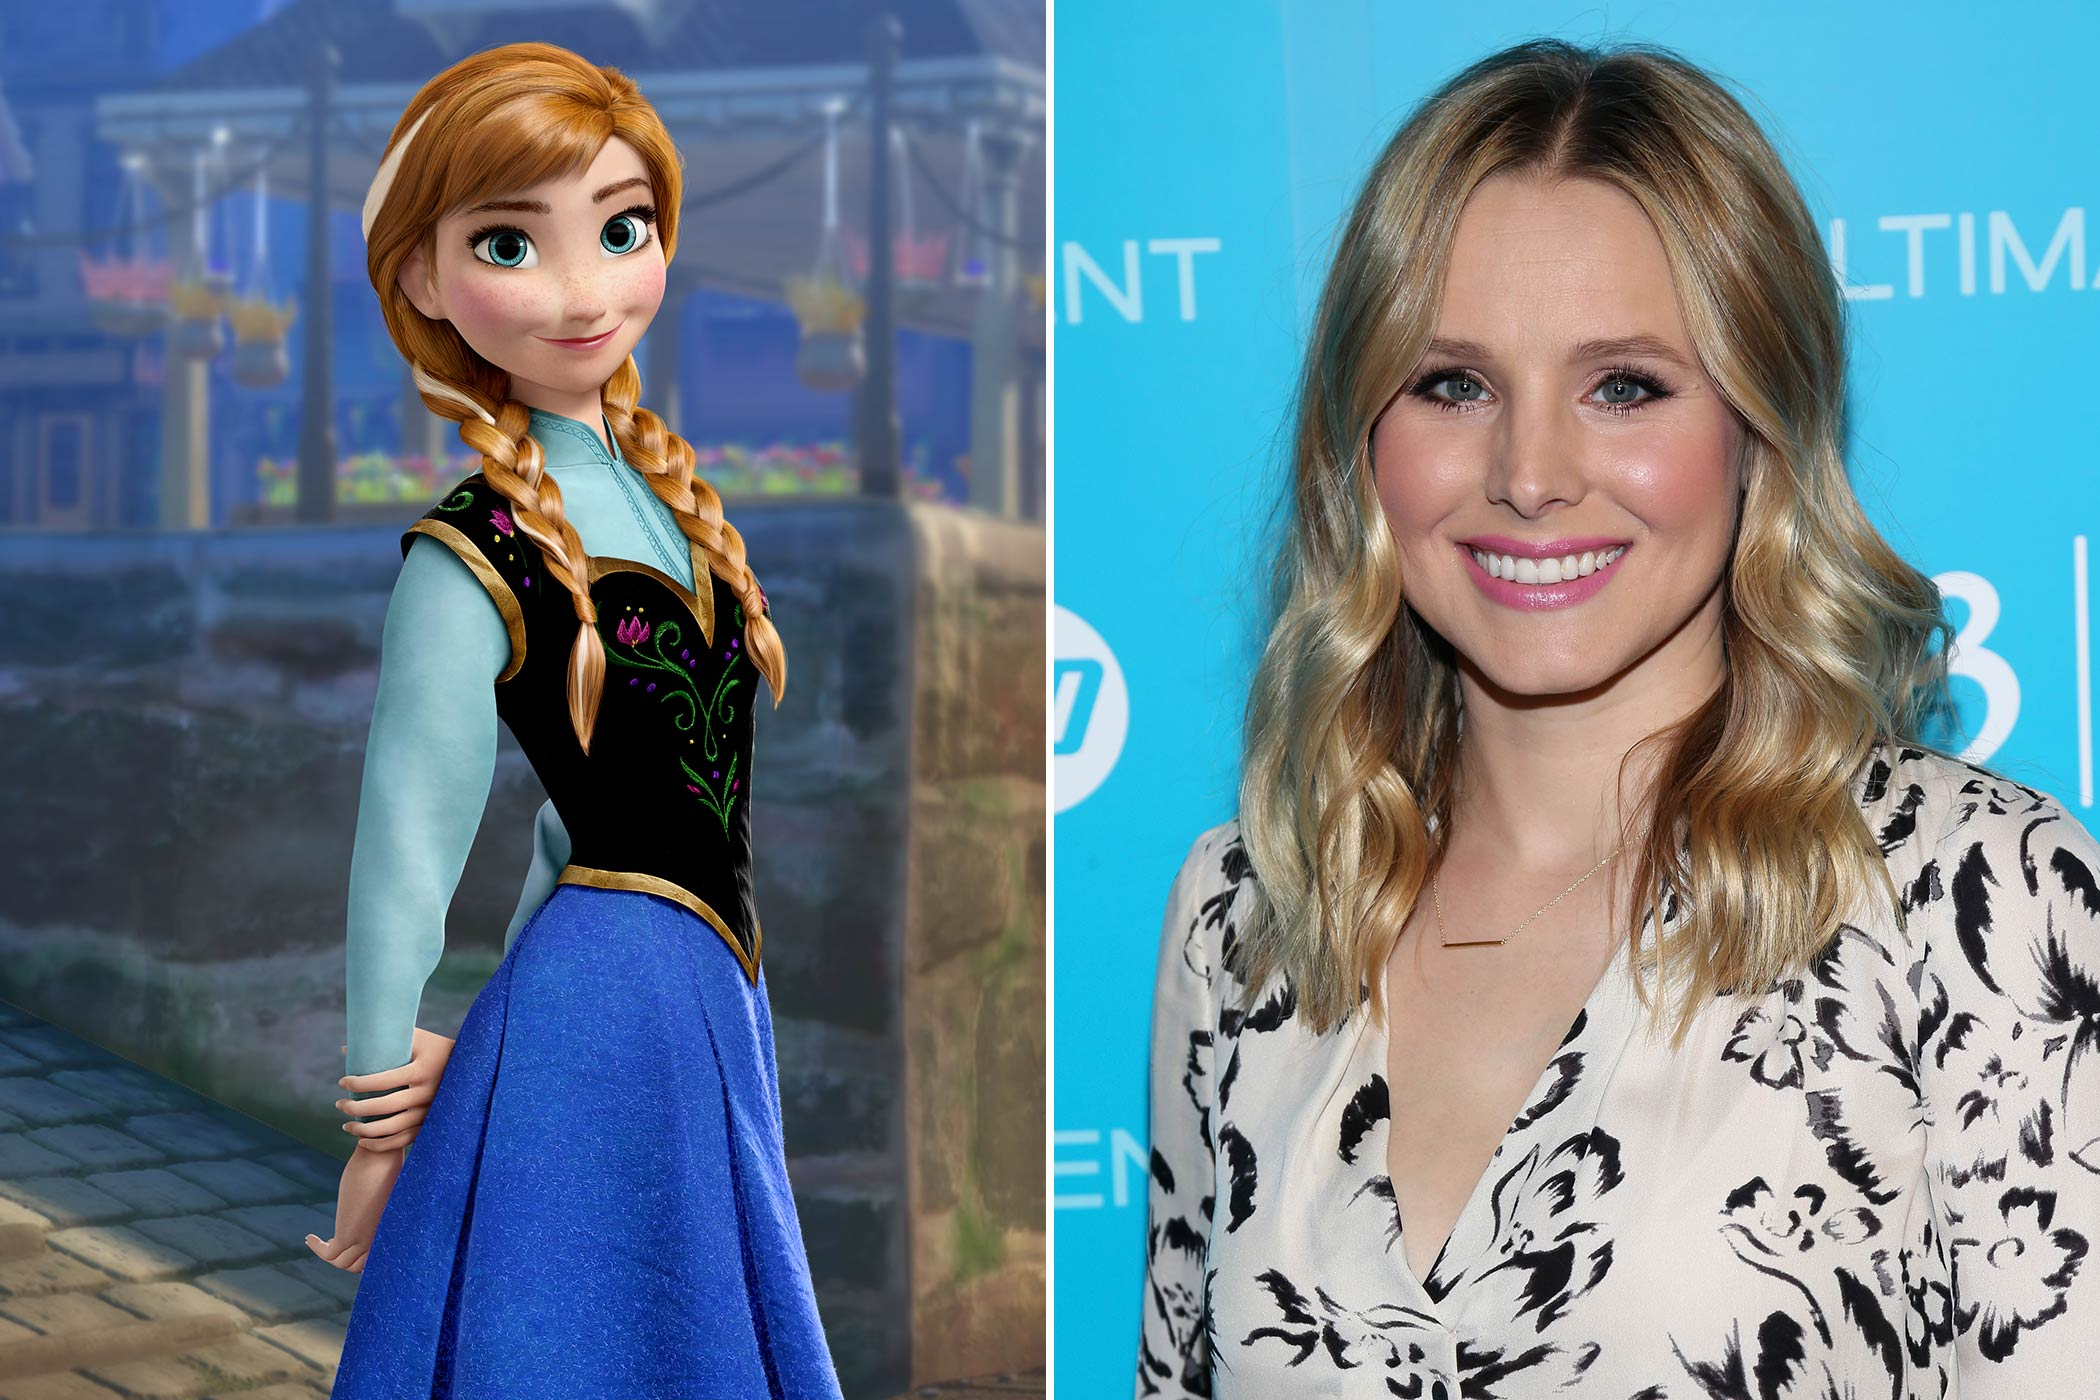 "<strong>Anna: Kristen Bell</strong>                                   Best known for her role as Veronica Mars, Kristen Bell plays Anna, the younger sister of Elsa in Disney's <i>Frozen</i>. Although Anna will not be officially added to the pantheon of Disney princesses until she's inducted in an official ceremony at a later date, Bell was nonetheless excited for the part. ""Oh, I was in glee."" Bell said in an interview with wegotthiscovered.com. ""I have always wanted to be part of a Disney animated feature. I grew up watching all of the old Disney musicals, and was especially obsessed with <i>The Little Mermaid</i> and <i>Aladdin</i>. It had always been my dream as a little girl to be a Disney princess, like it is everybody's."""